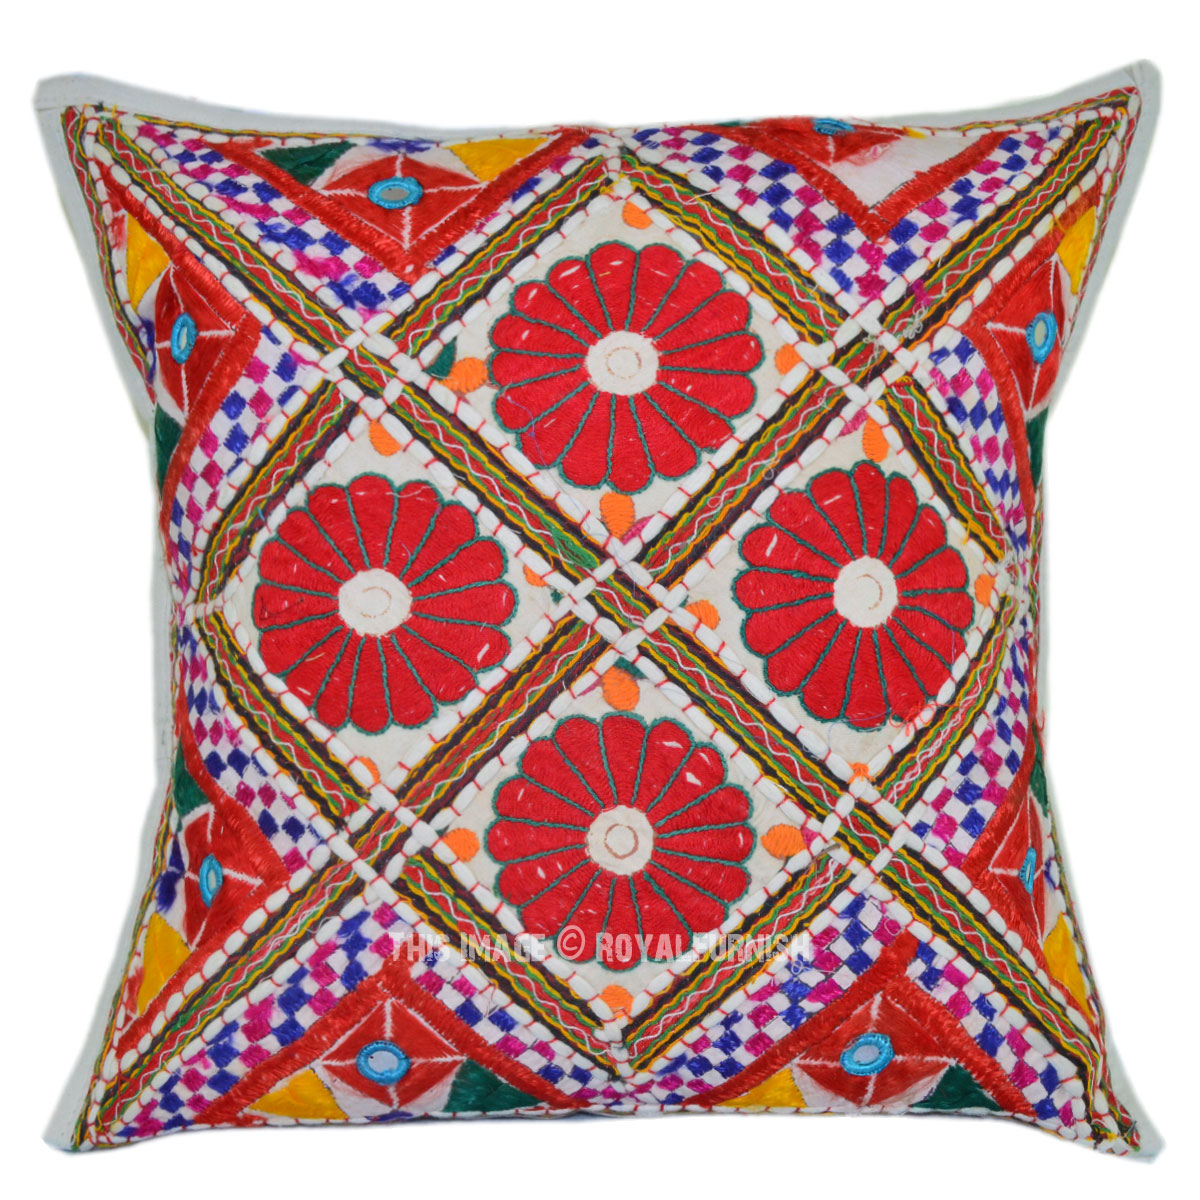 Embroidered Throw Pillow Covers : White Four Floral Multi Hand Embroidered Throw Pillow Cover - RoyalFurnish.com